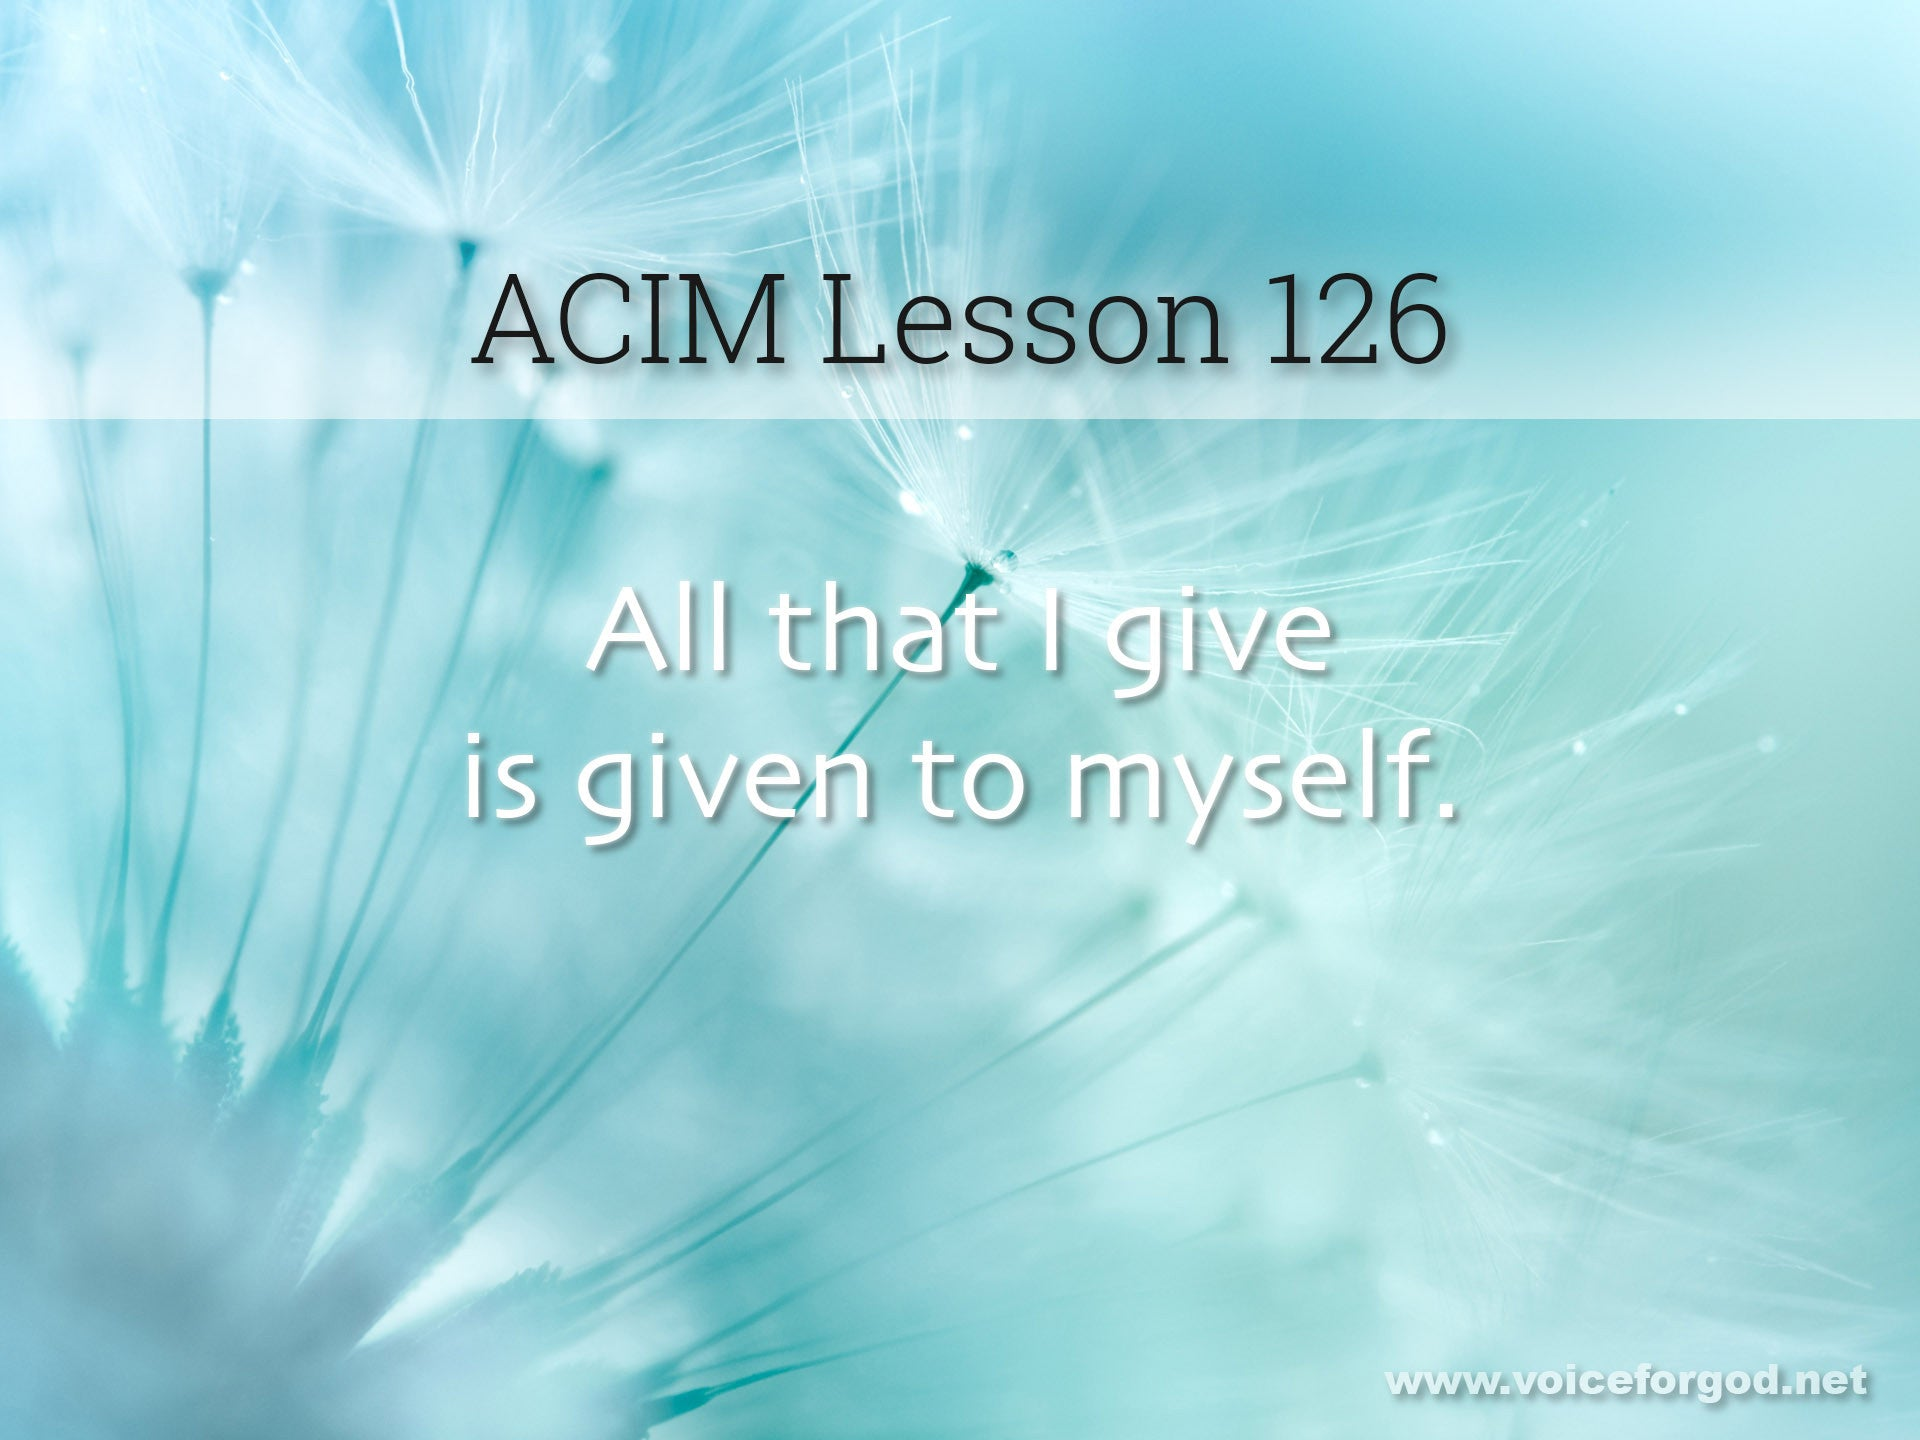 ACIM Lesson 126 - A Course in Miracles Workbook Lesson 126